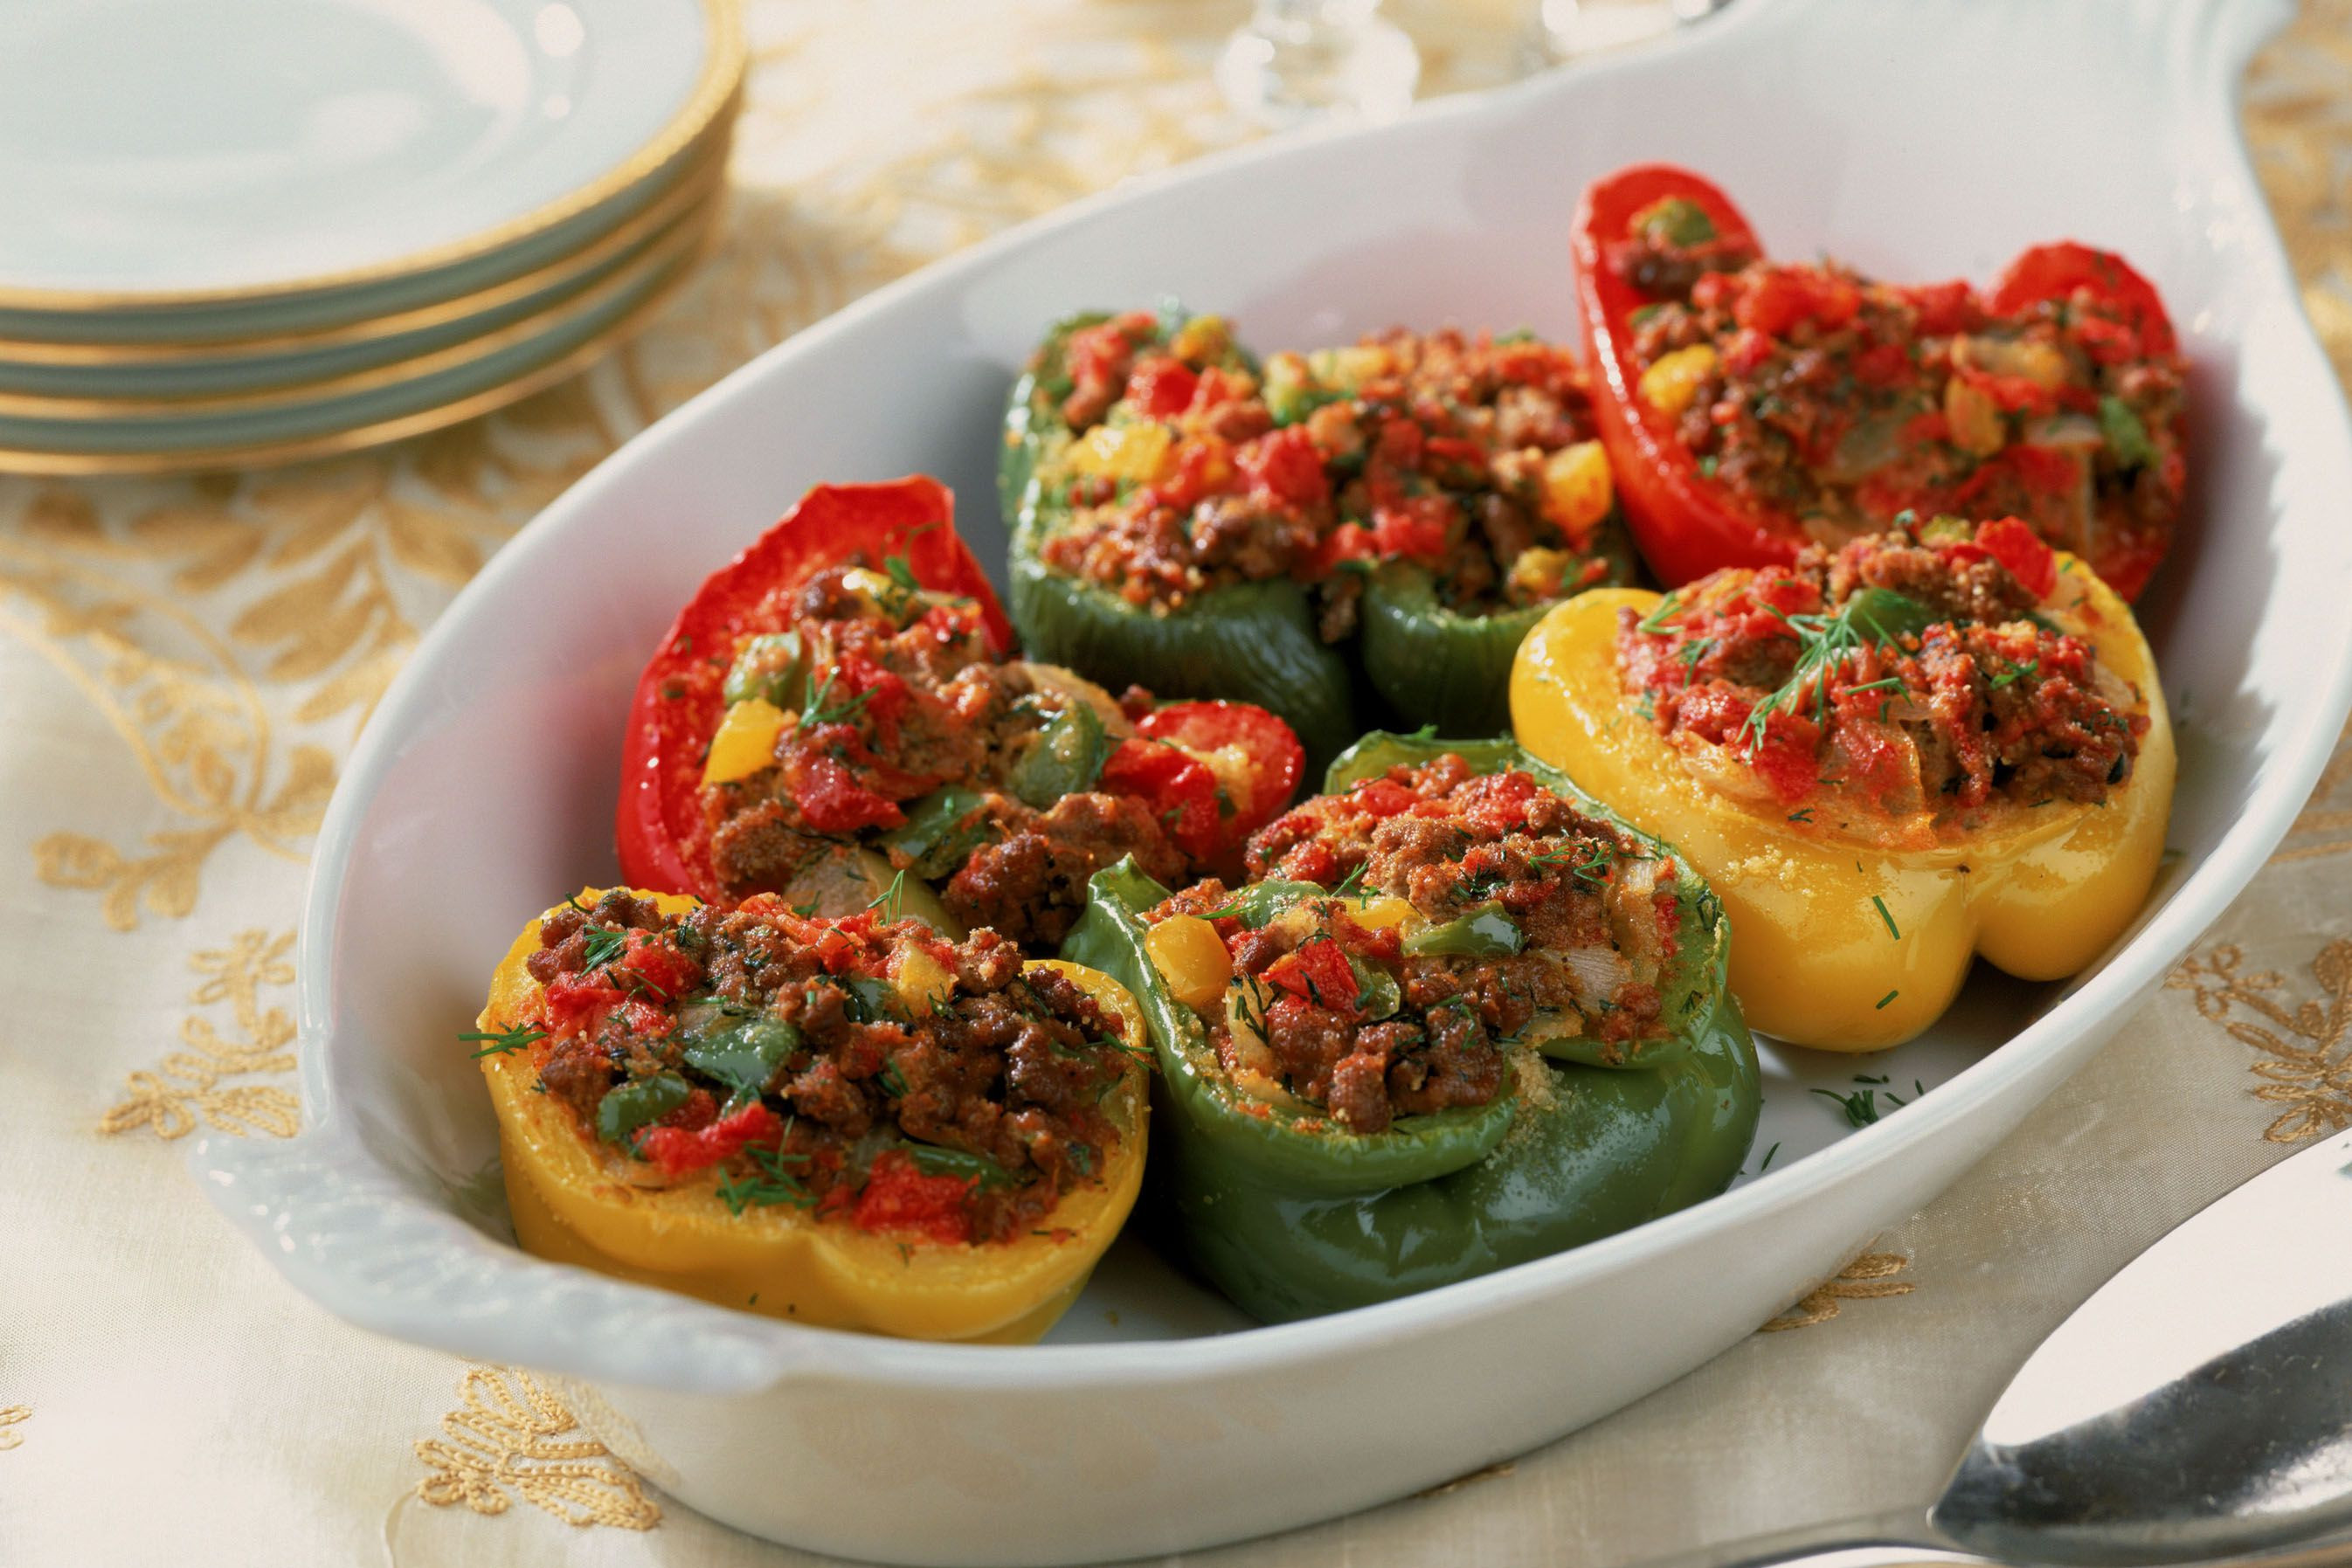 Stuffed Peppers With Ground Beef  Baked Stuffed Peppers With Ground Beef and Corn